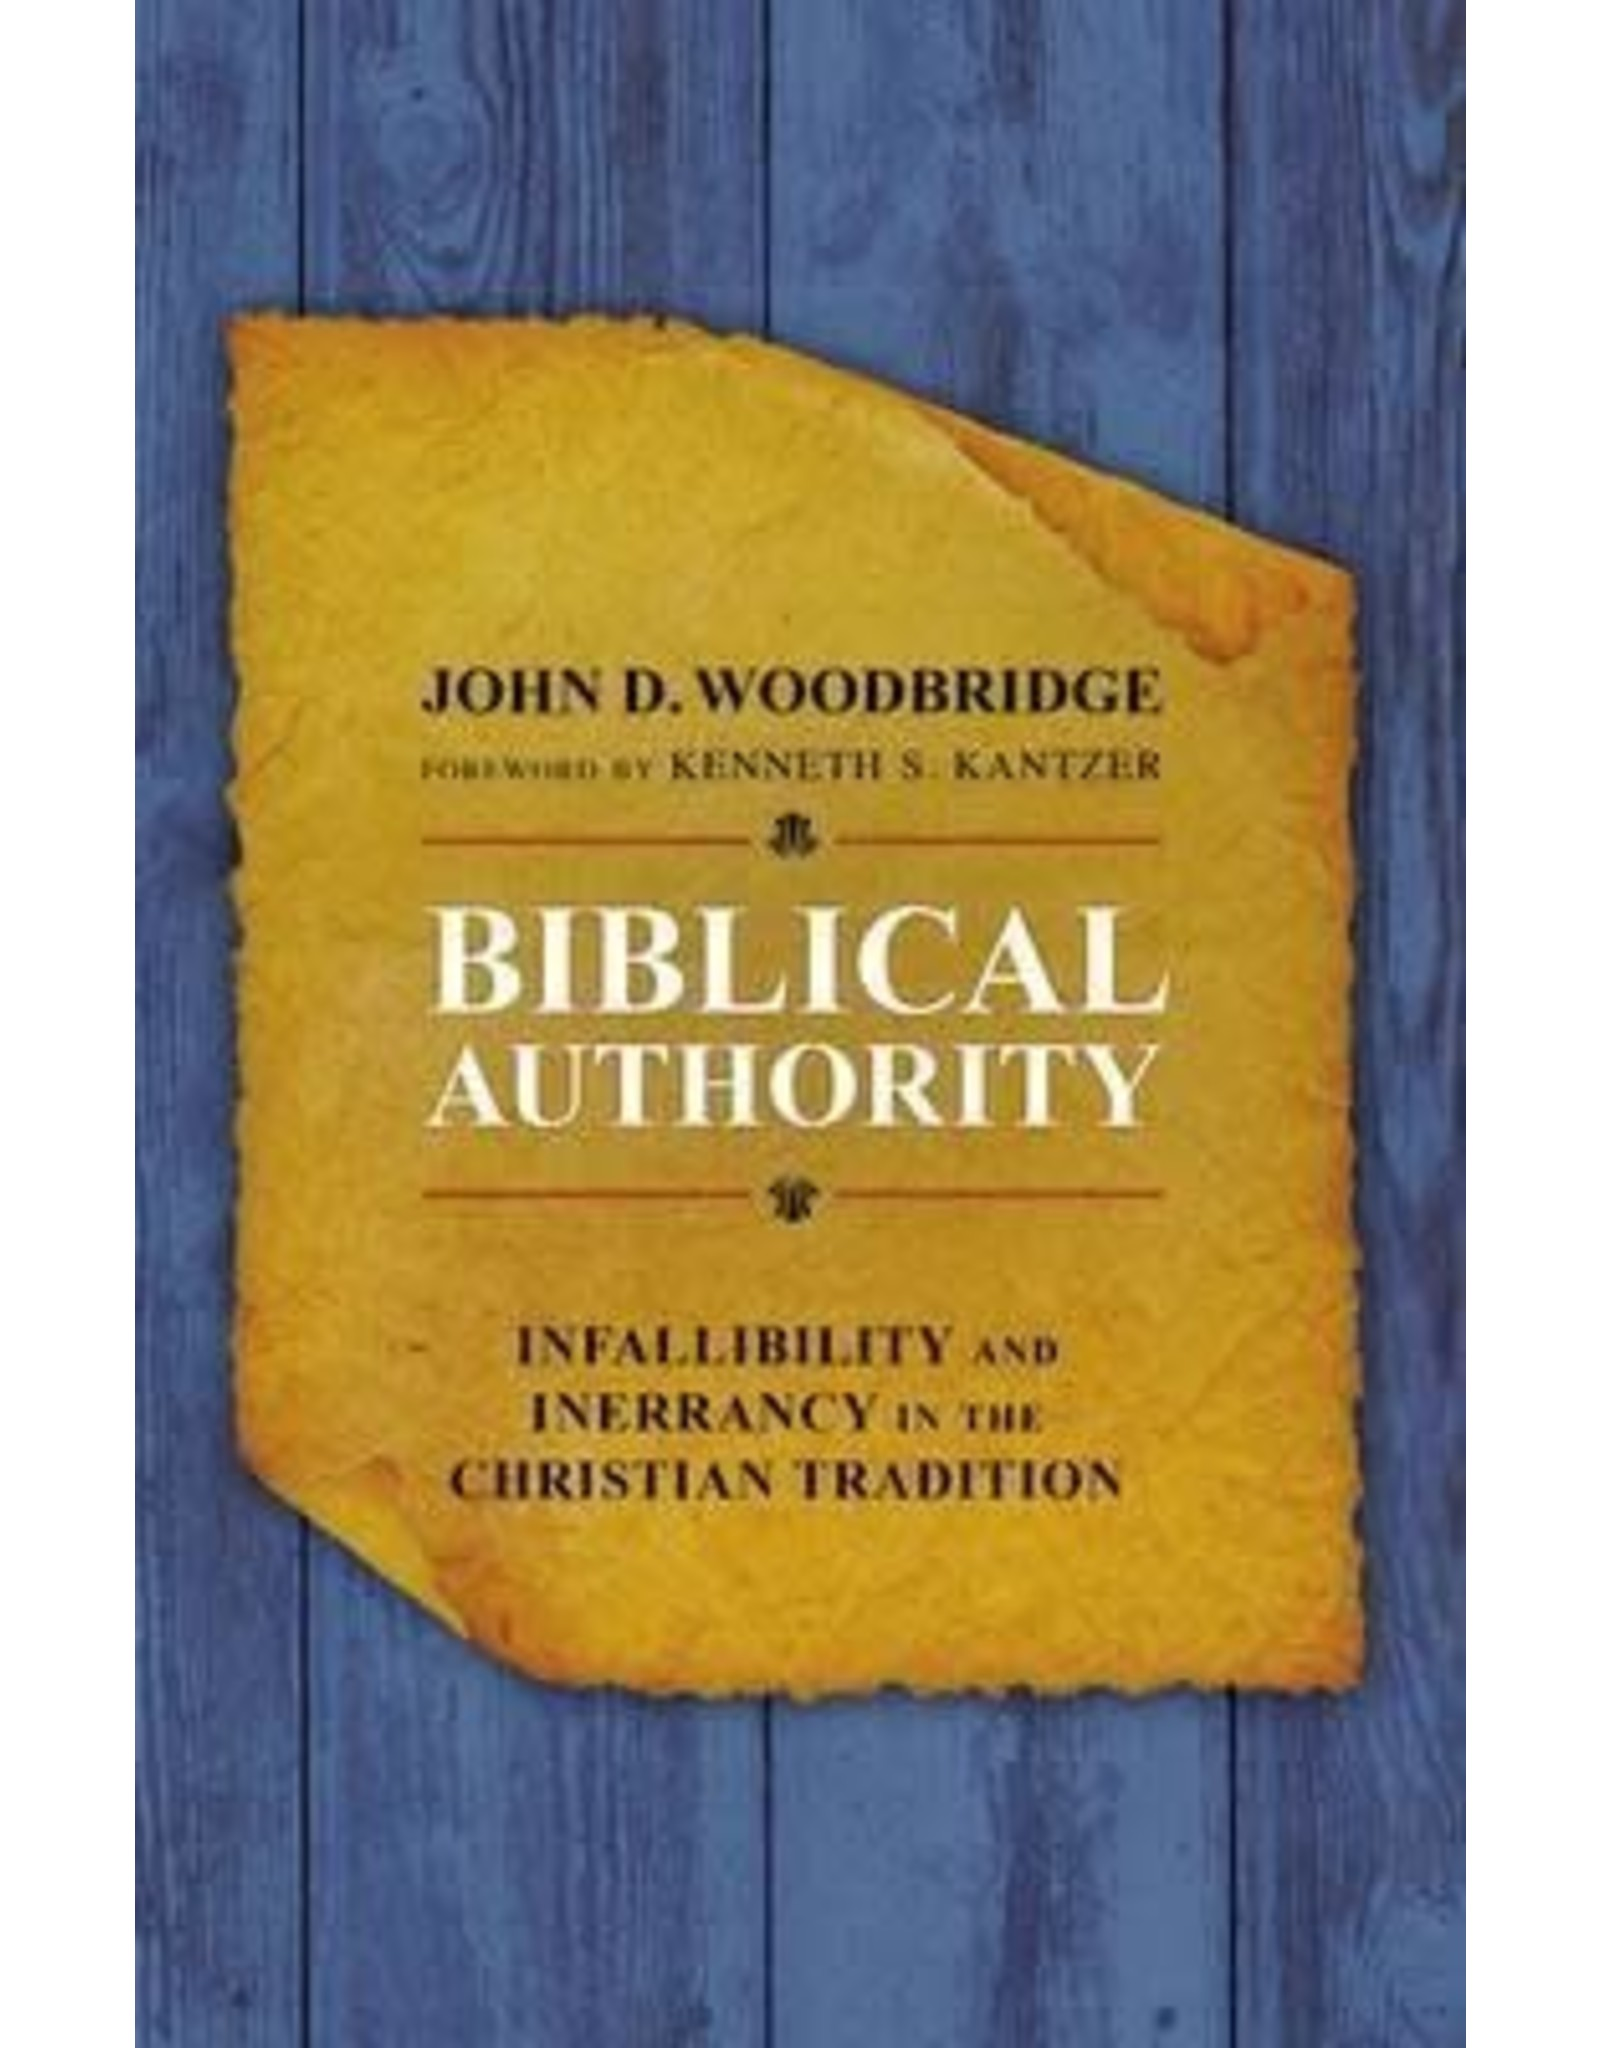 Harper Collins / Thomas Nelson / Zondervan Biblical Authority: Infallibility and Inerrancy in the Christian Tradition